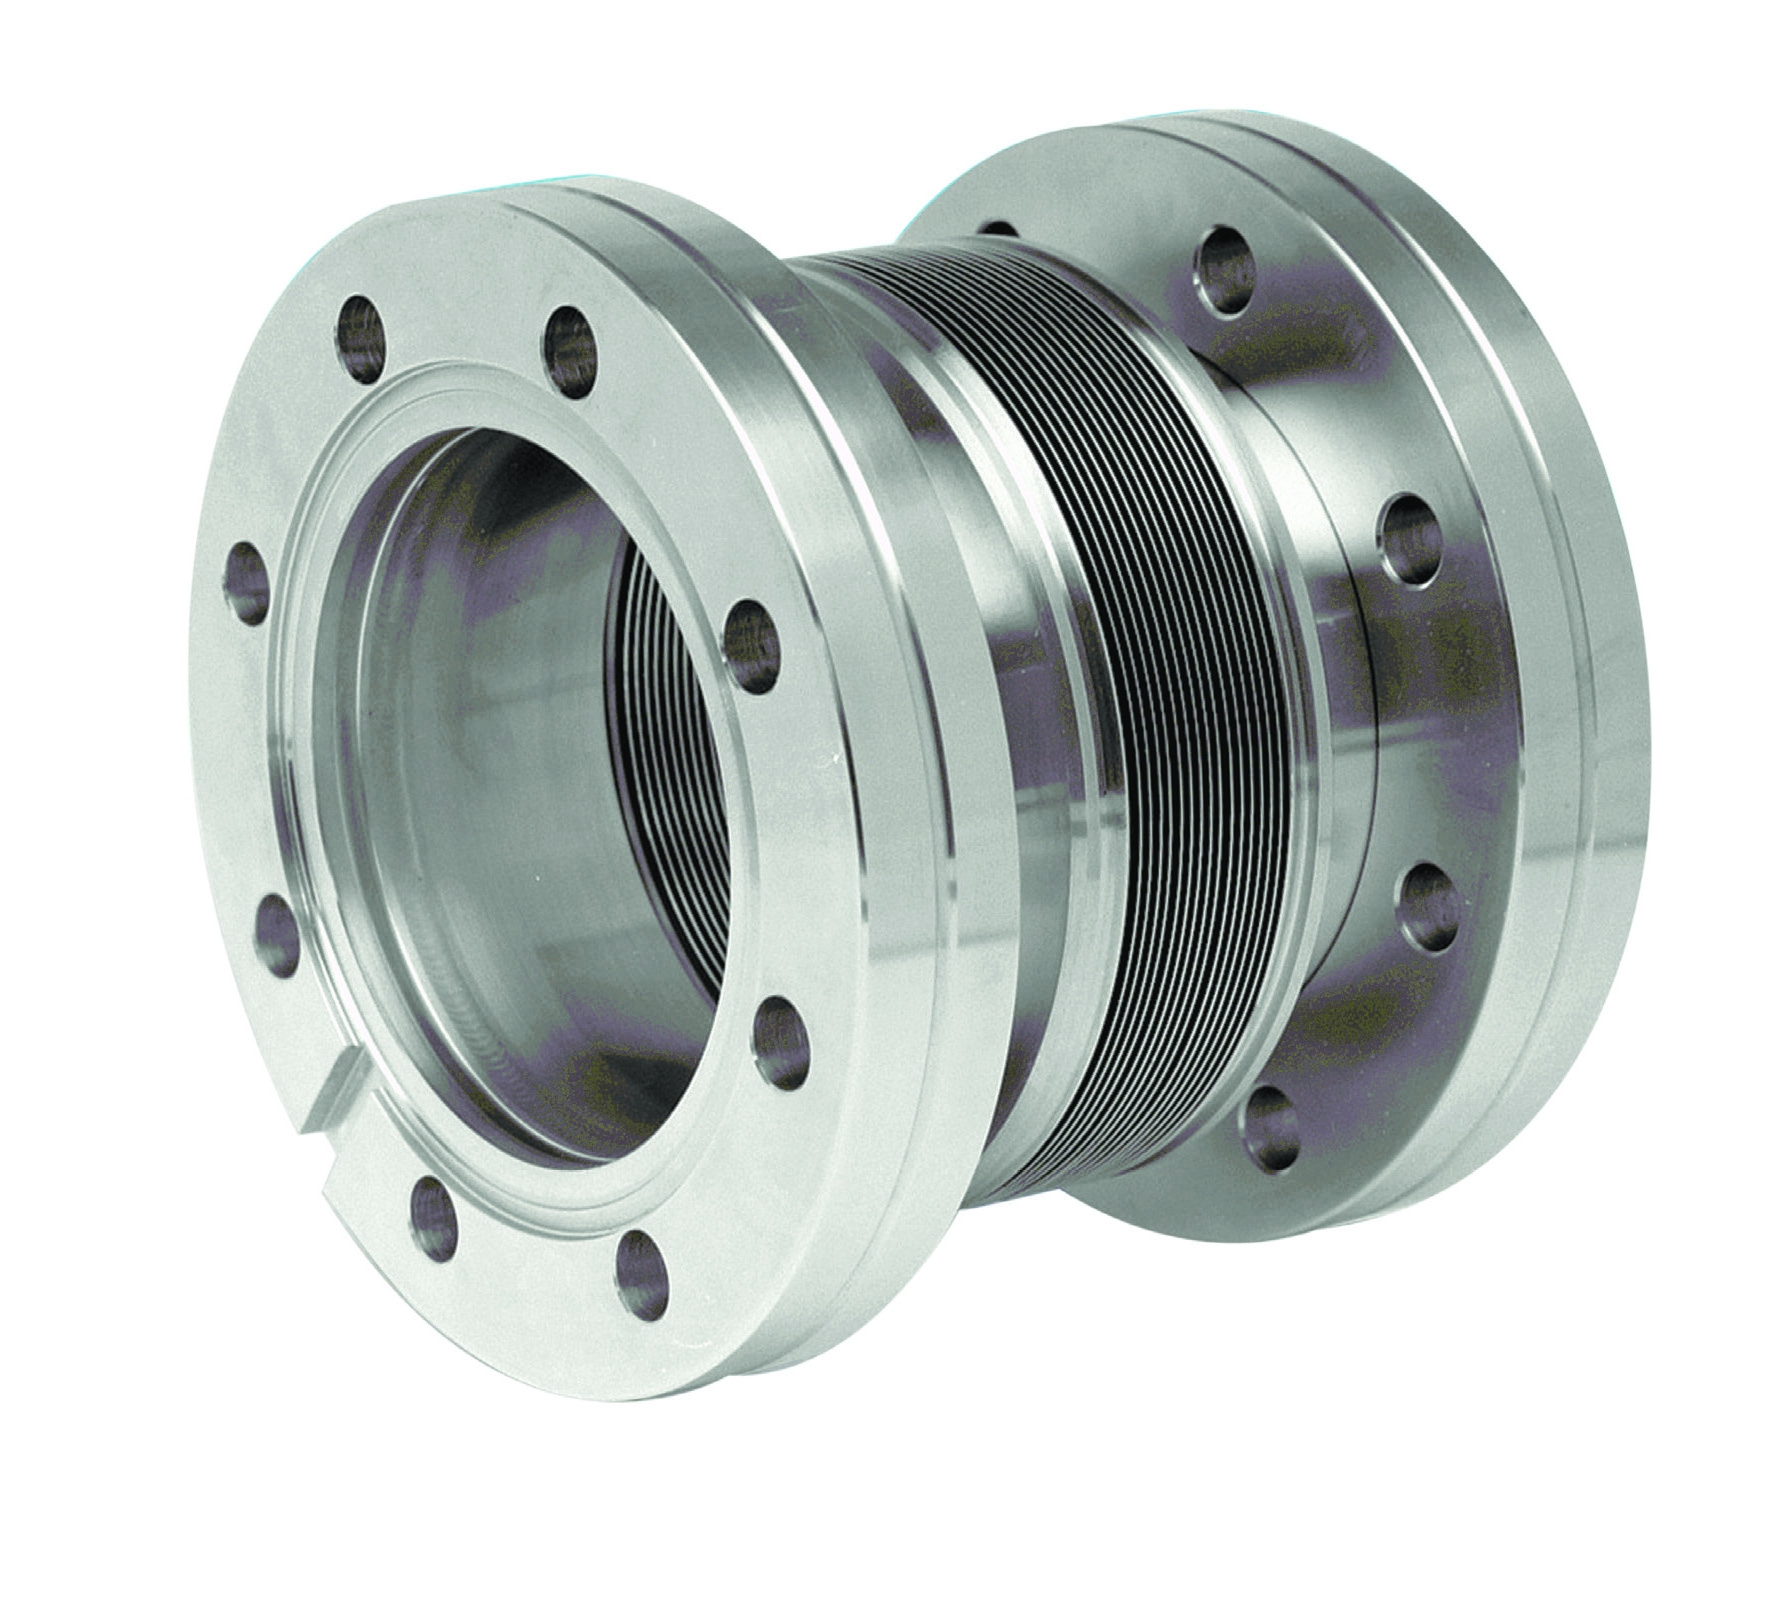 Edge welded bellow with DN100CF flanges, L = 90 - 140mm